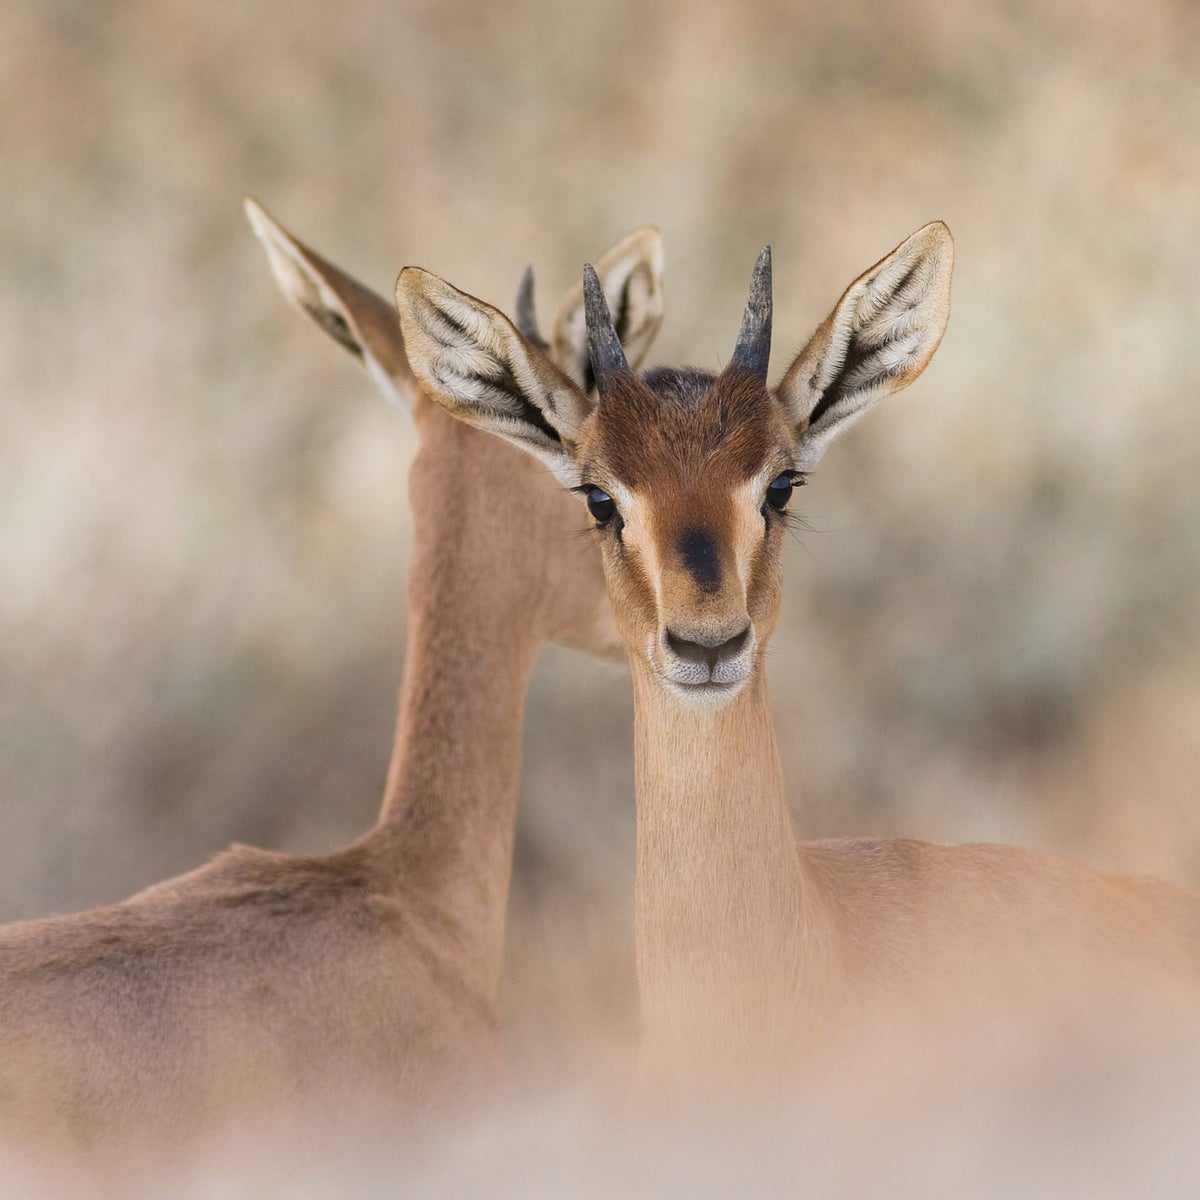 Gazelles in Jerusalem. Gazelles and hunted and hit by cars in large numbers every year.